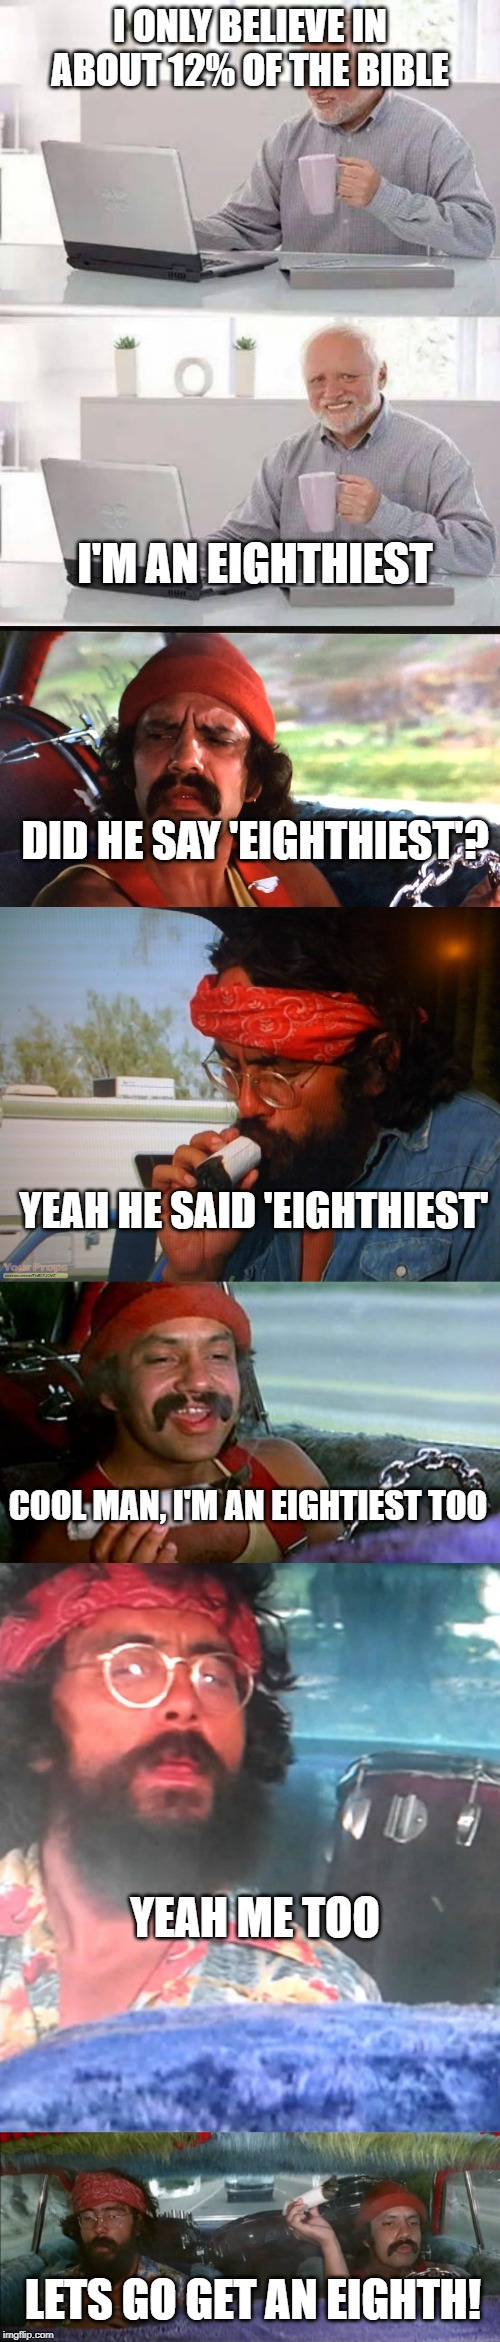 Cheech and Chong follow Harold. | I ONLY BELIEVE IN ABOUT 12% OF THE BIBLE I'M AN EIGHTHIEST DID HE SAY 'EIGHTHIEST'? YEAH HE SAID 'EIGHTHIEST' COOL MAN, I'M AN EIGHTIEST TOO | image tagged in memes,hide the pain harold,cheech and chong,smoking weed | made w/ Imgflip meme maker